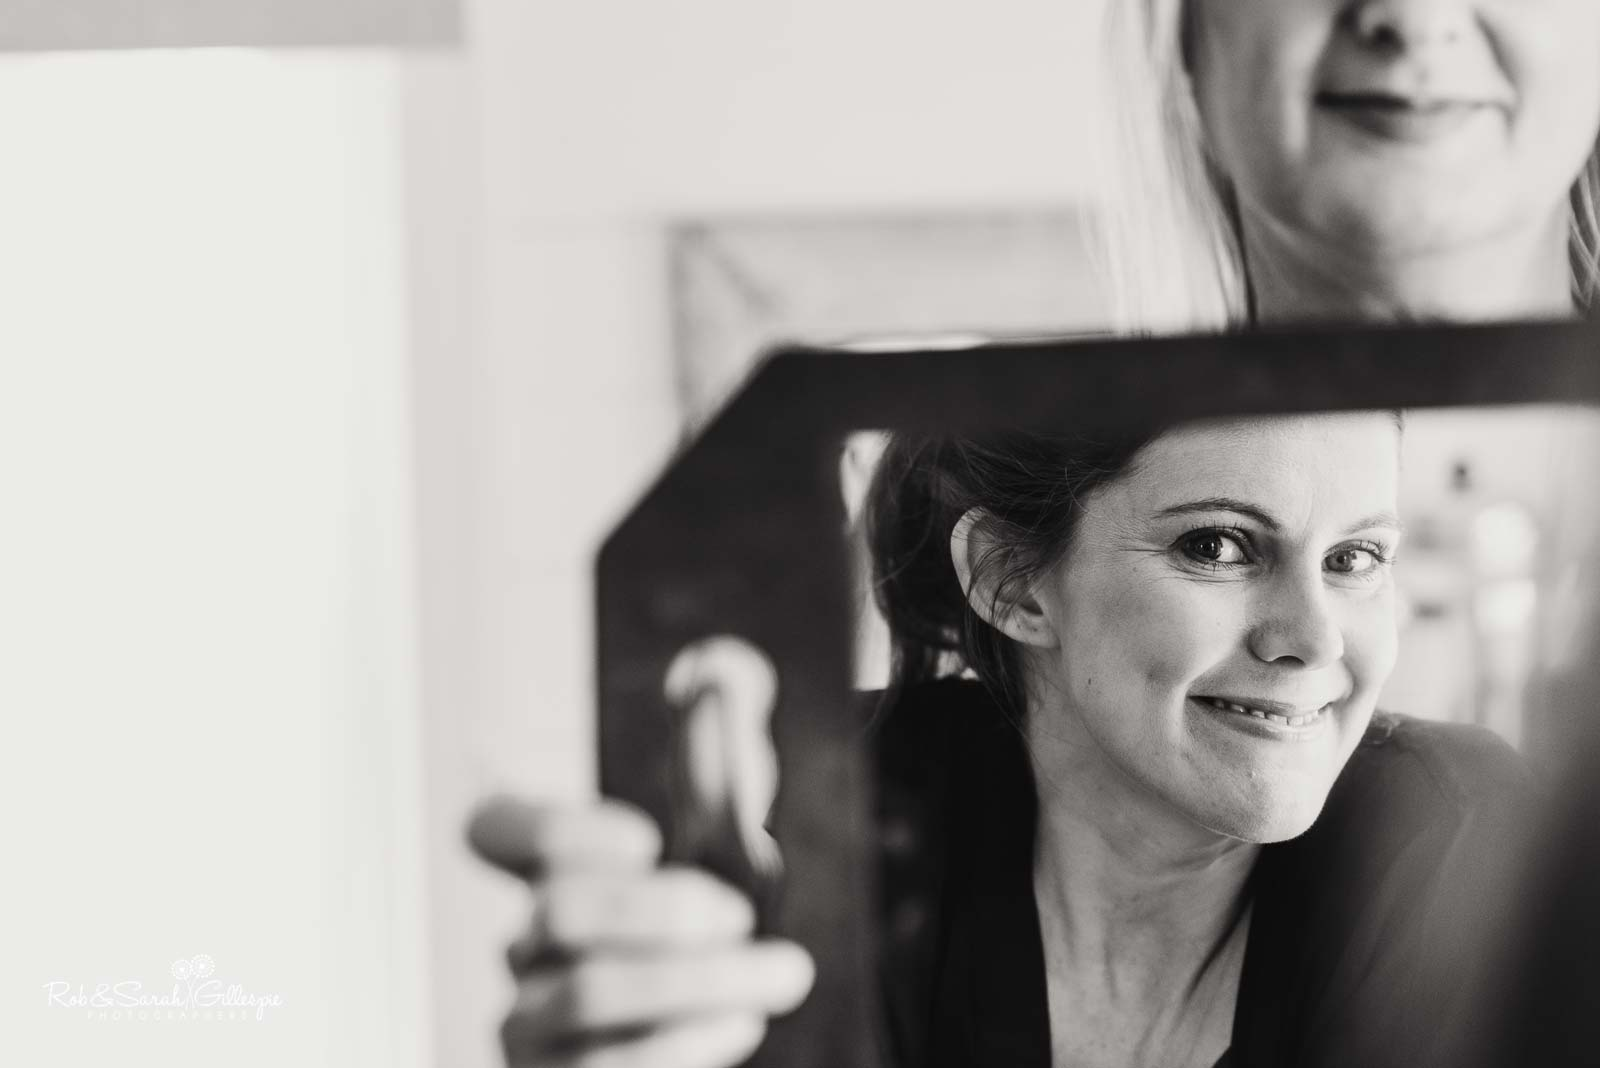 Bride smiling in mirror as she prepares for wedding at Wethele Manor